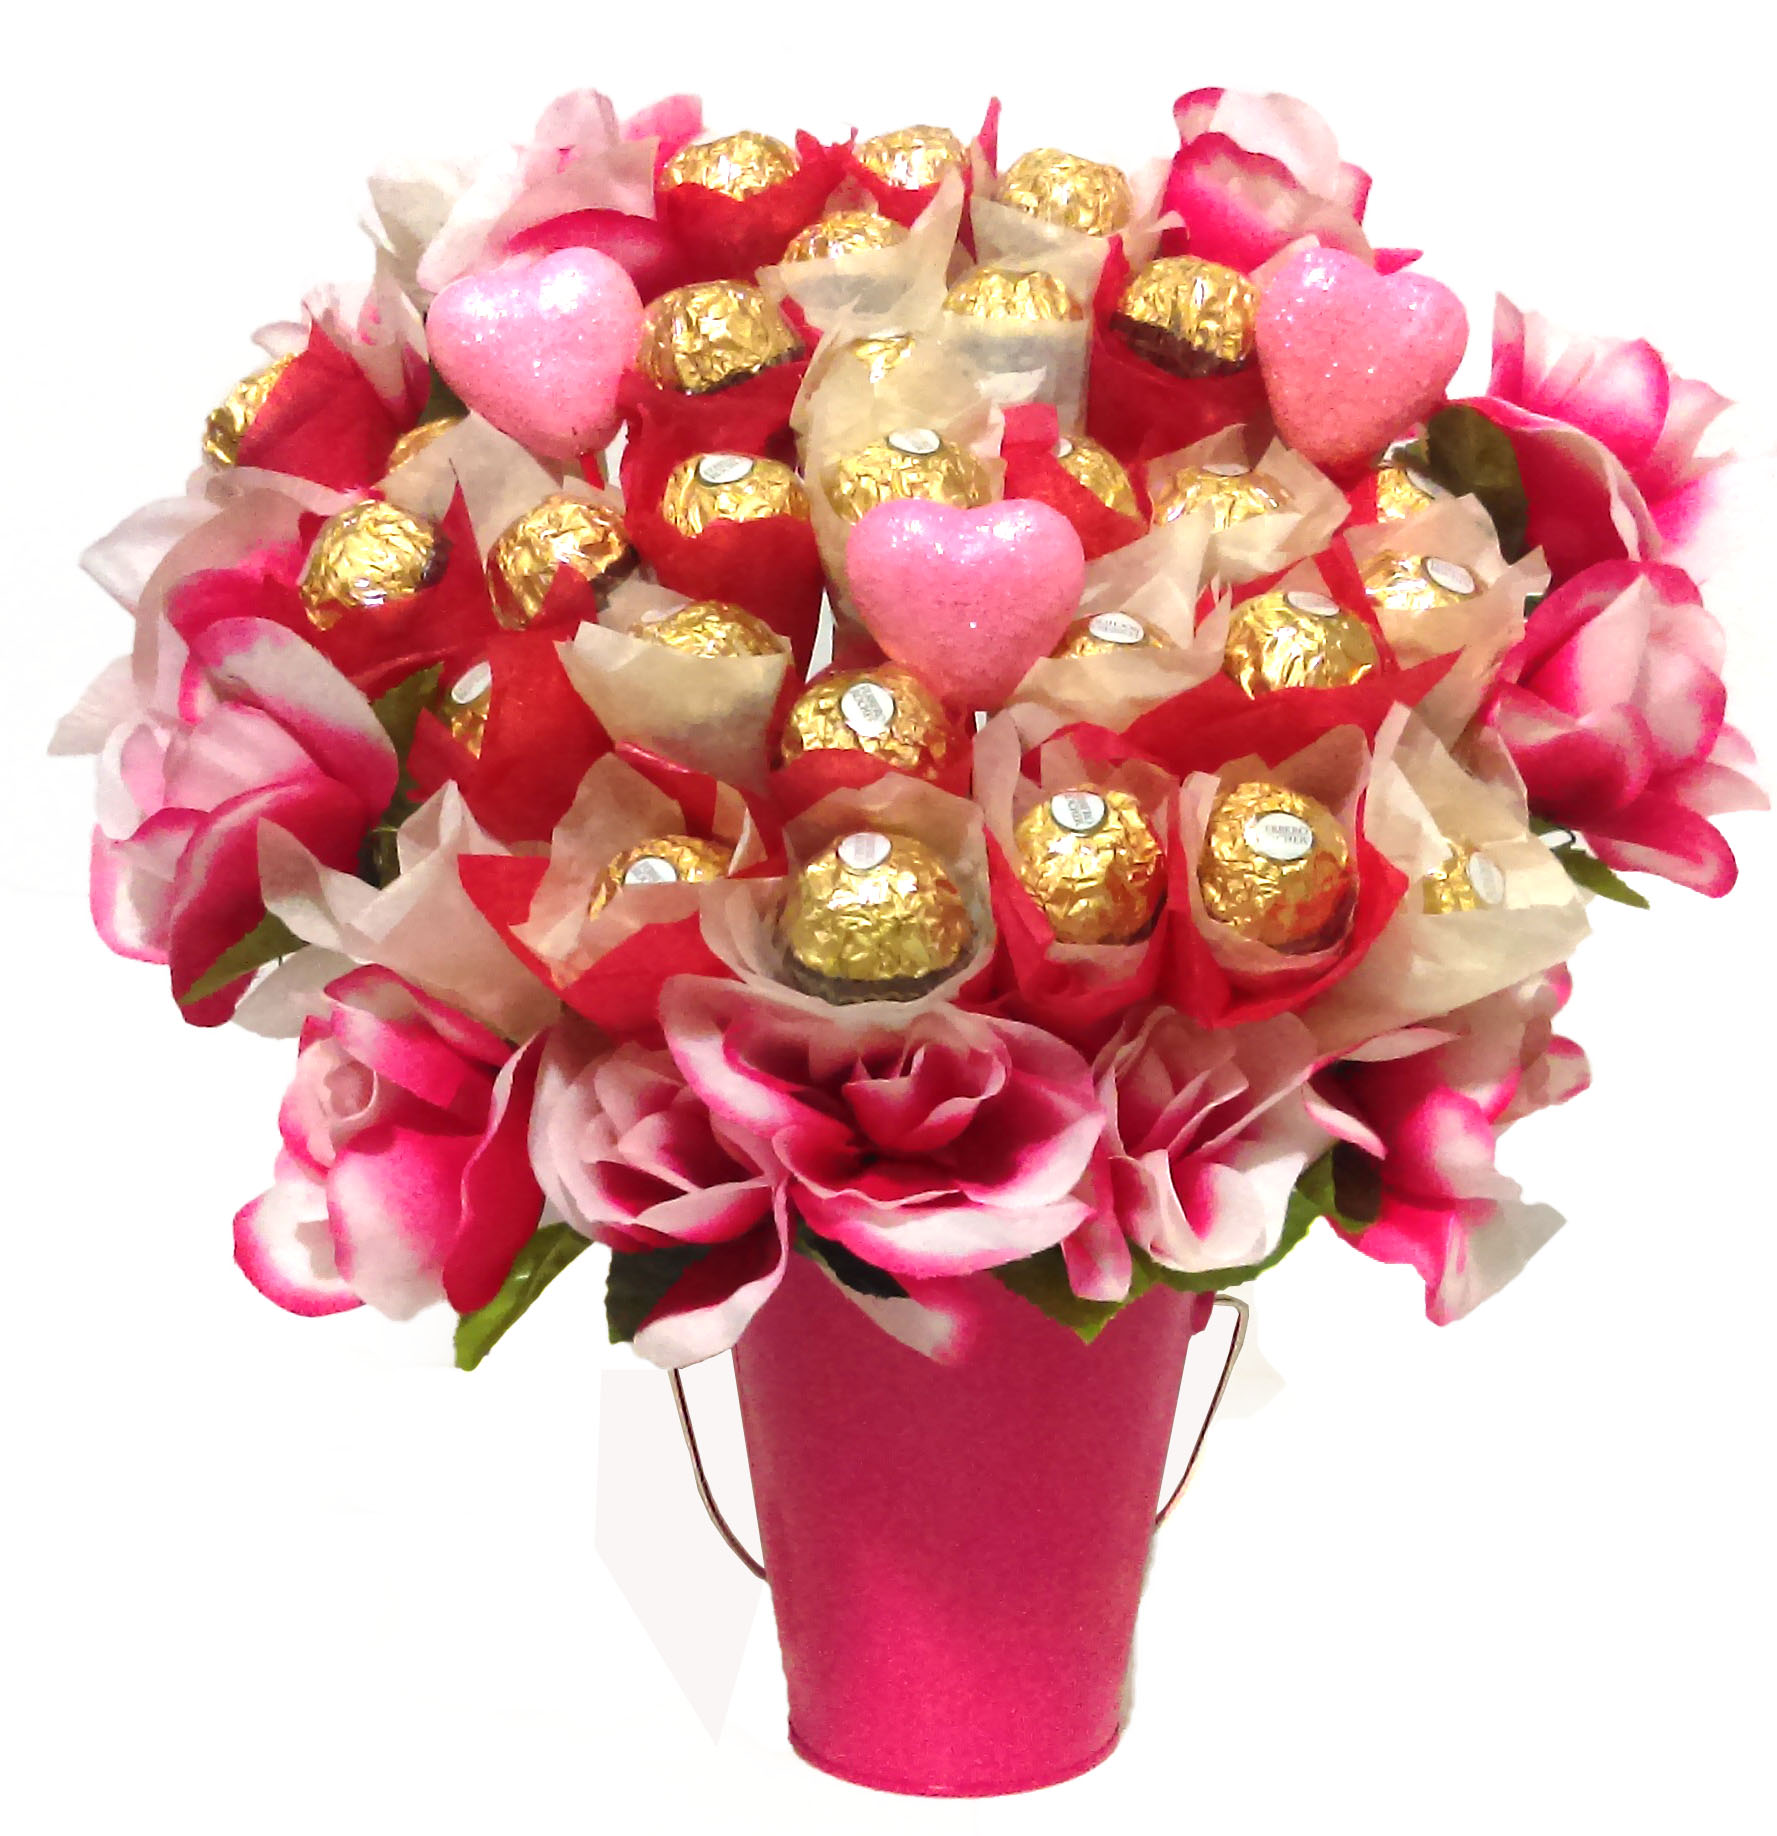 Unique Valentine's Day Gifts: Pink Rose Ferrero Rocher Bouquet